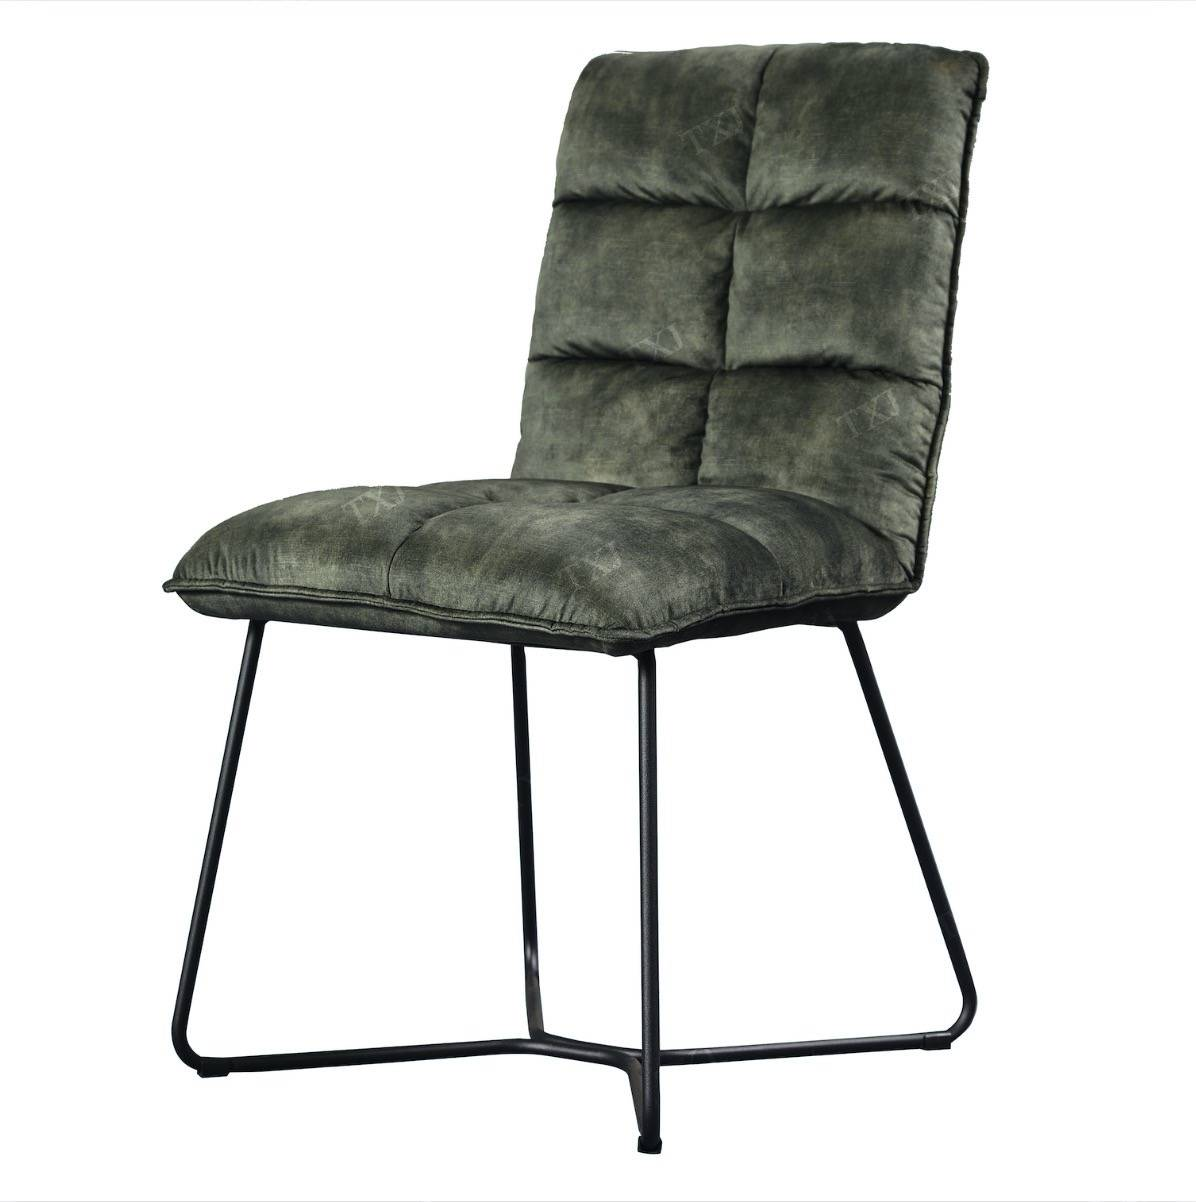 Dining Chair TC-2097 made by velvet Featured Image